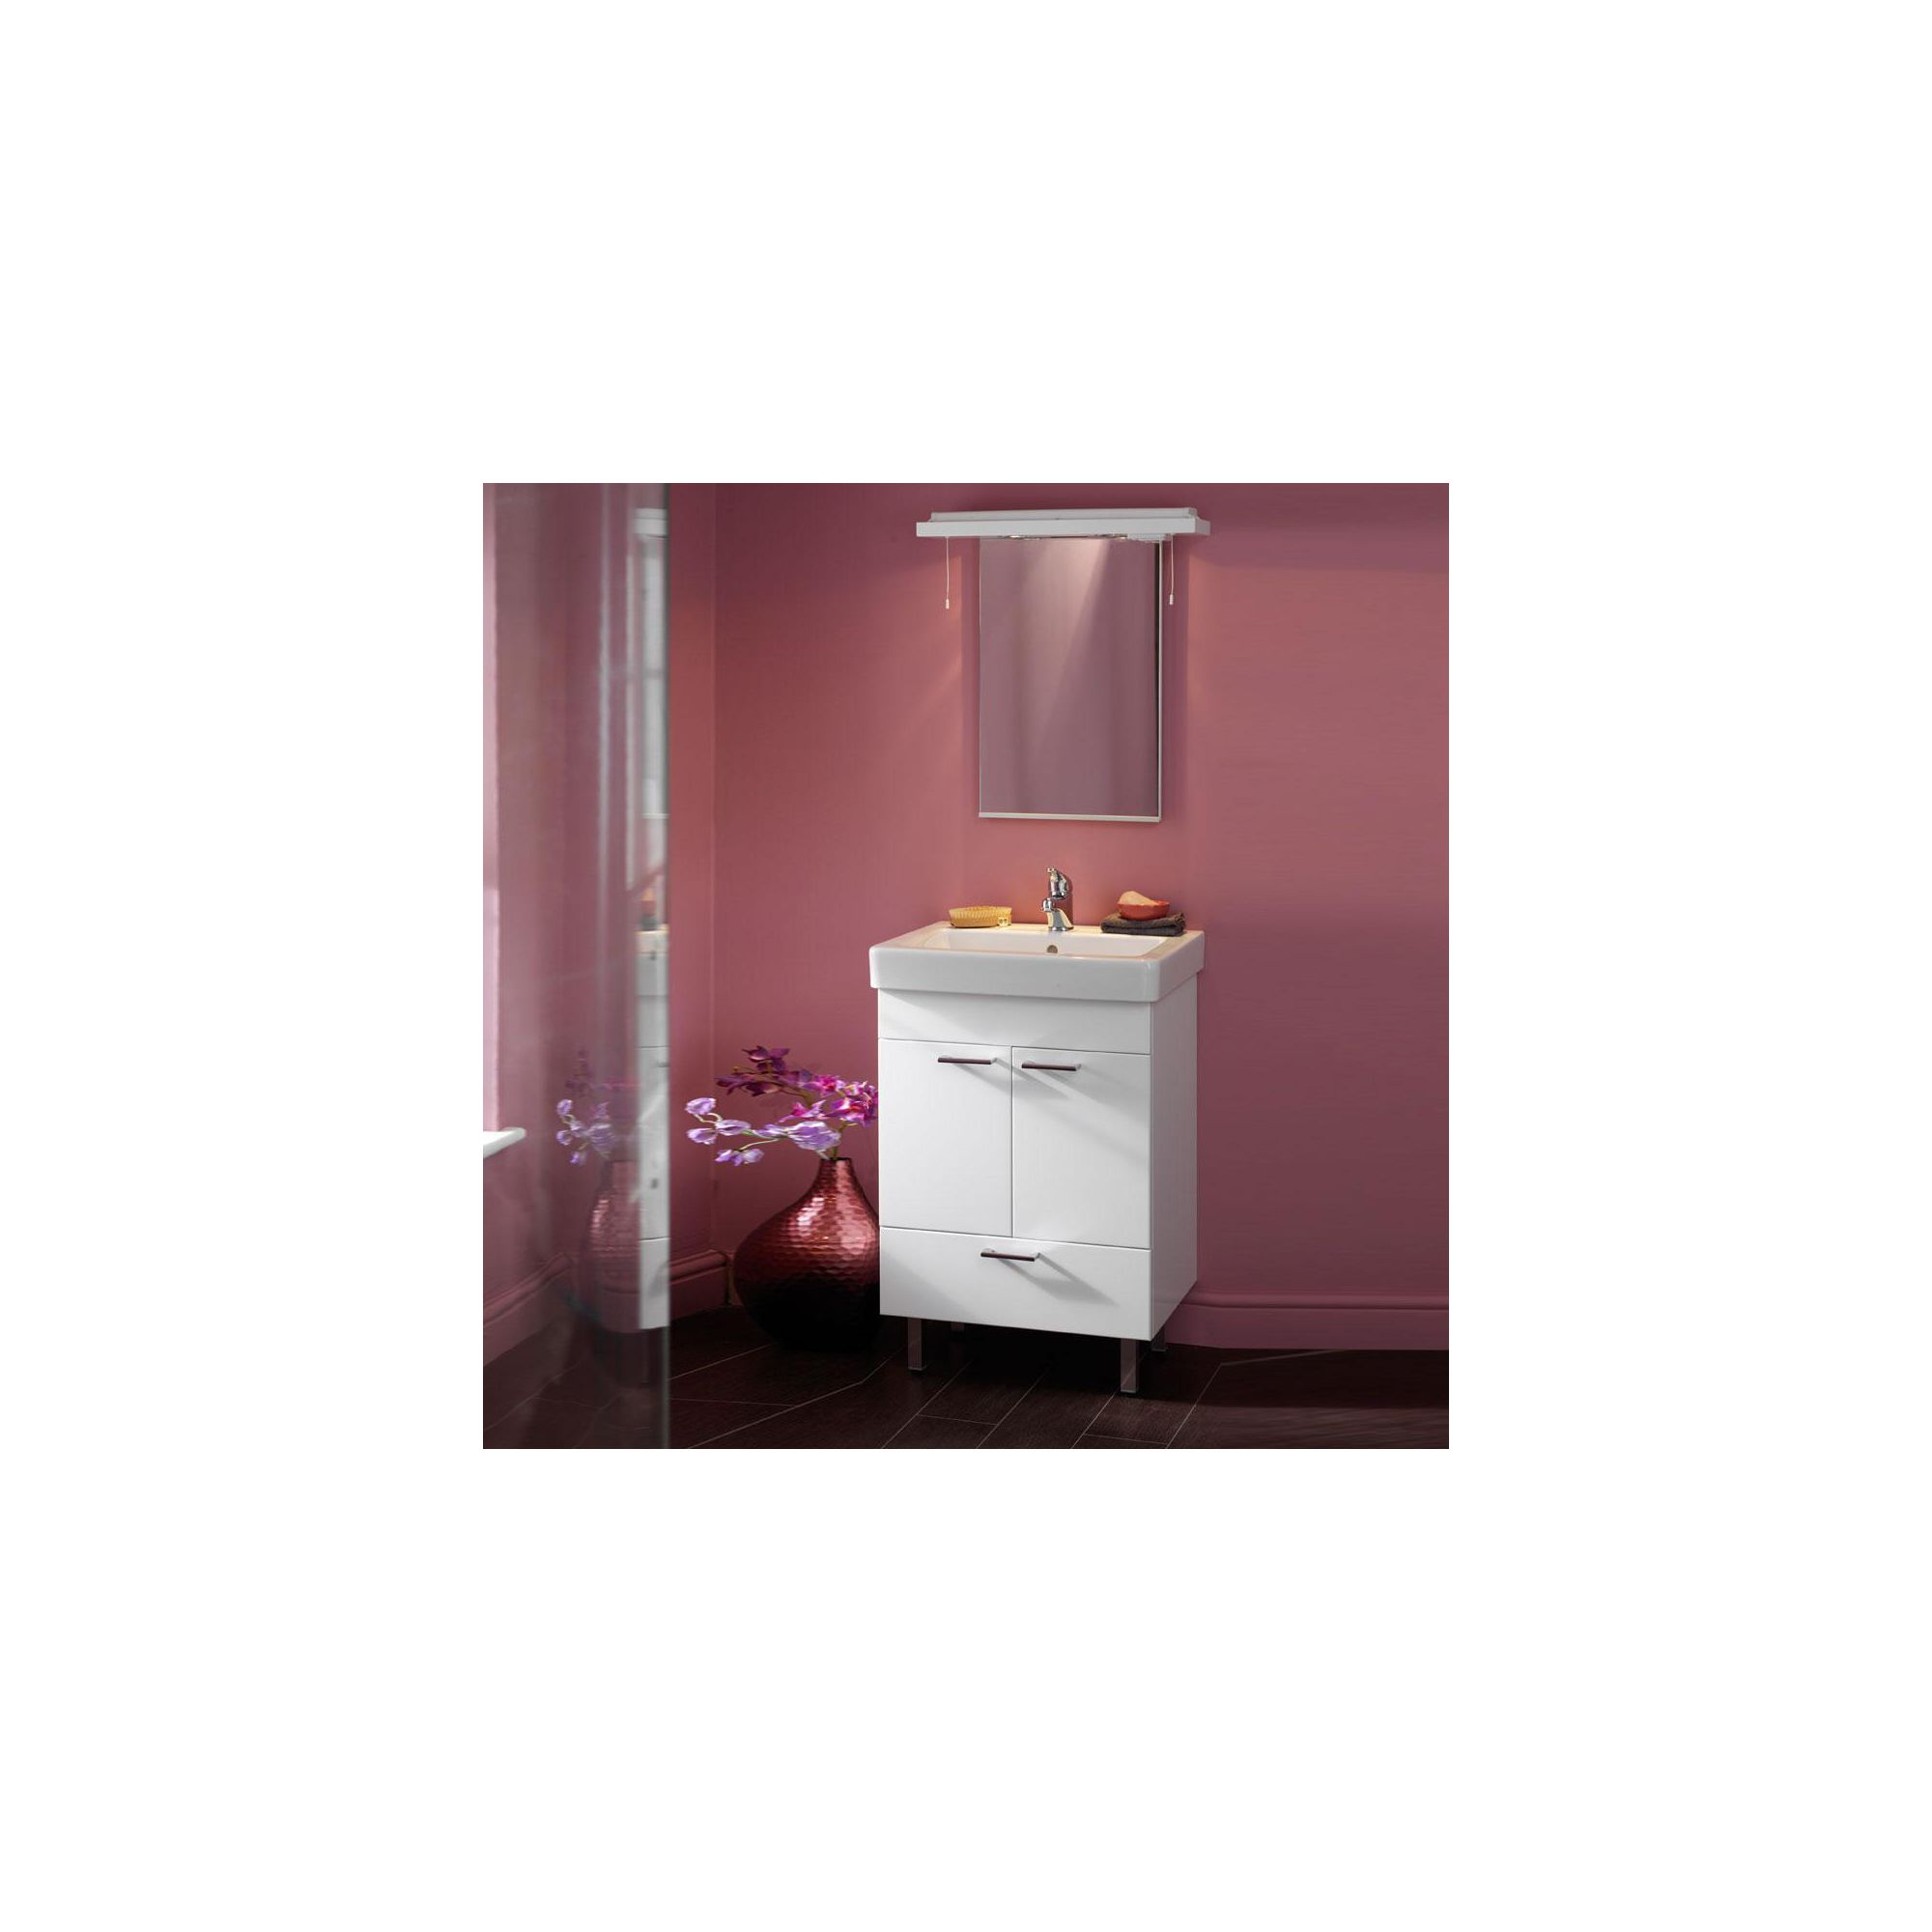 Duchy Trerise White Floor Standing 2 Door 1 Drawer Vanity Unit and Basin - 600mm Wide x 445mm Deep including Mirror and Cornice